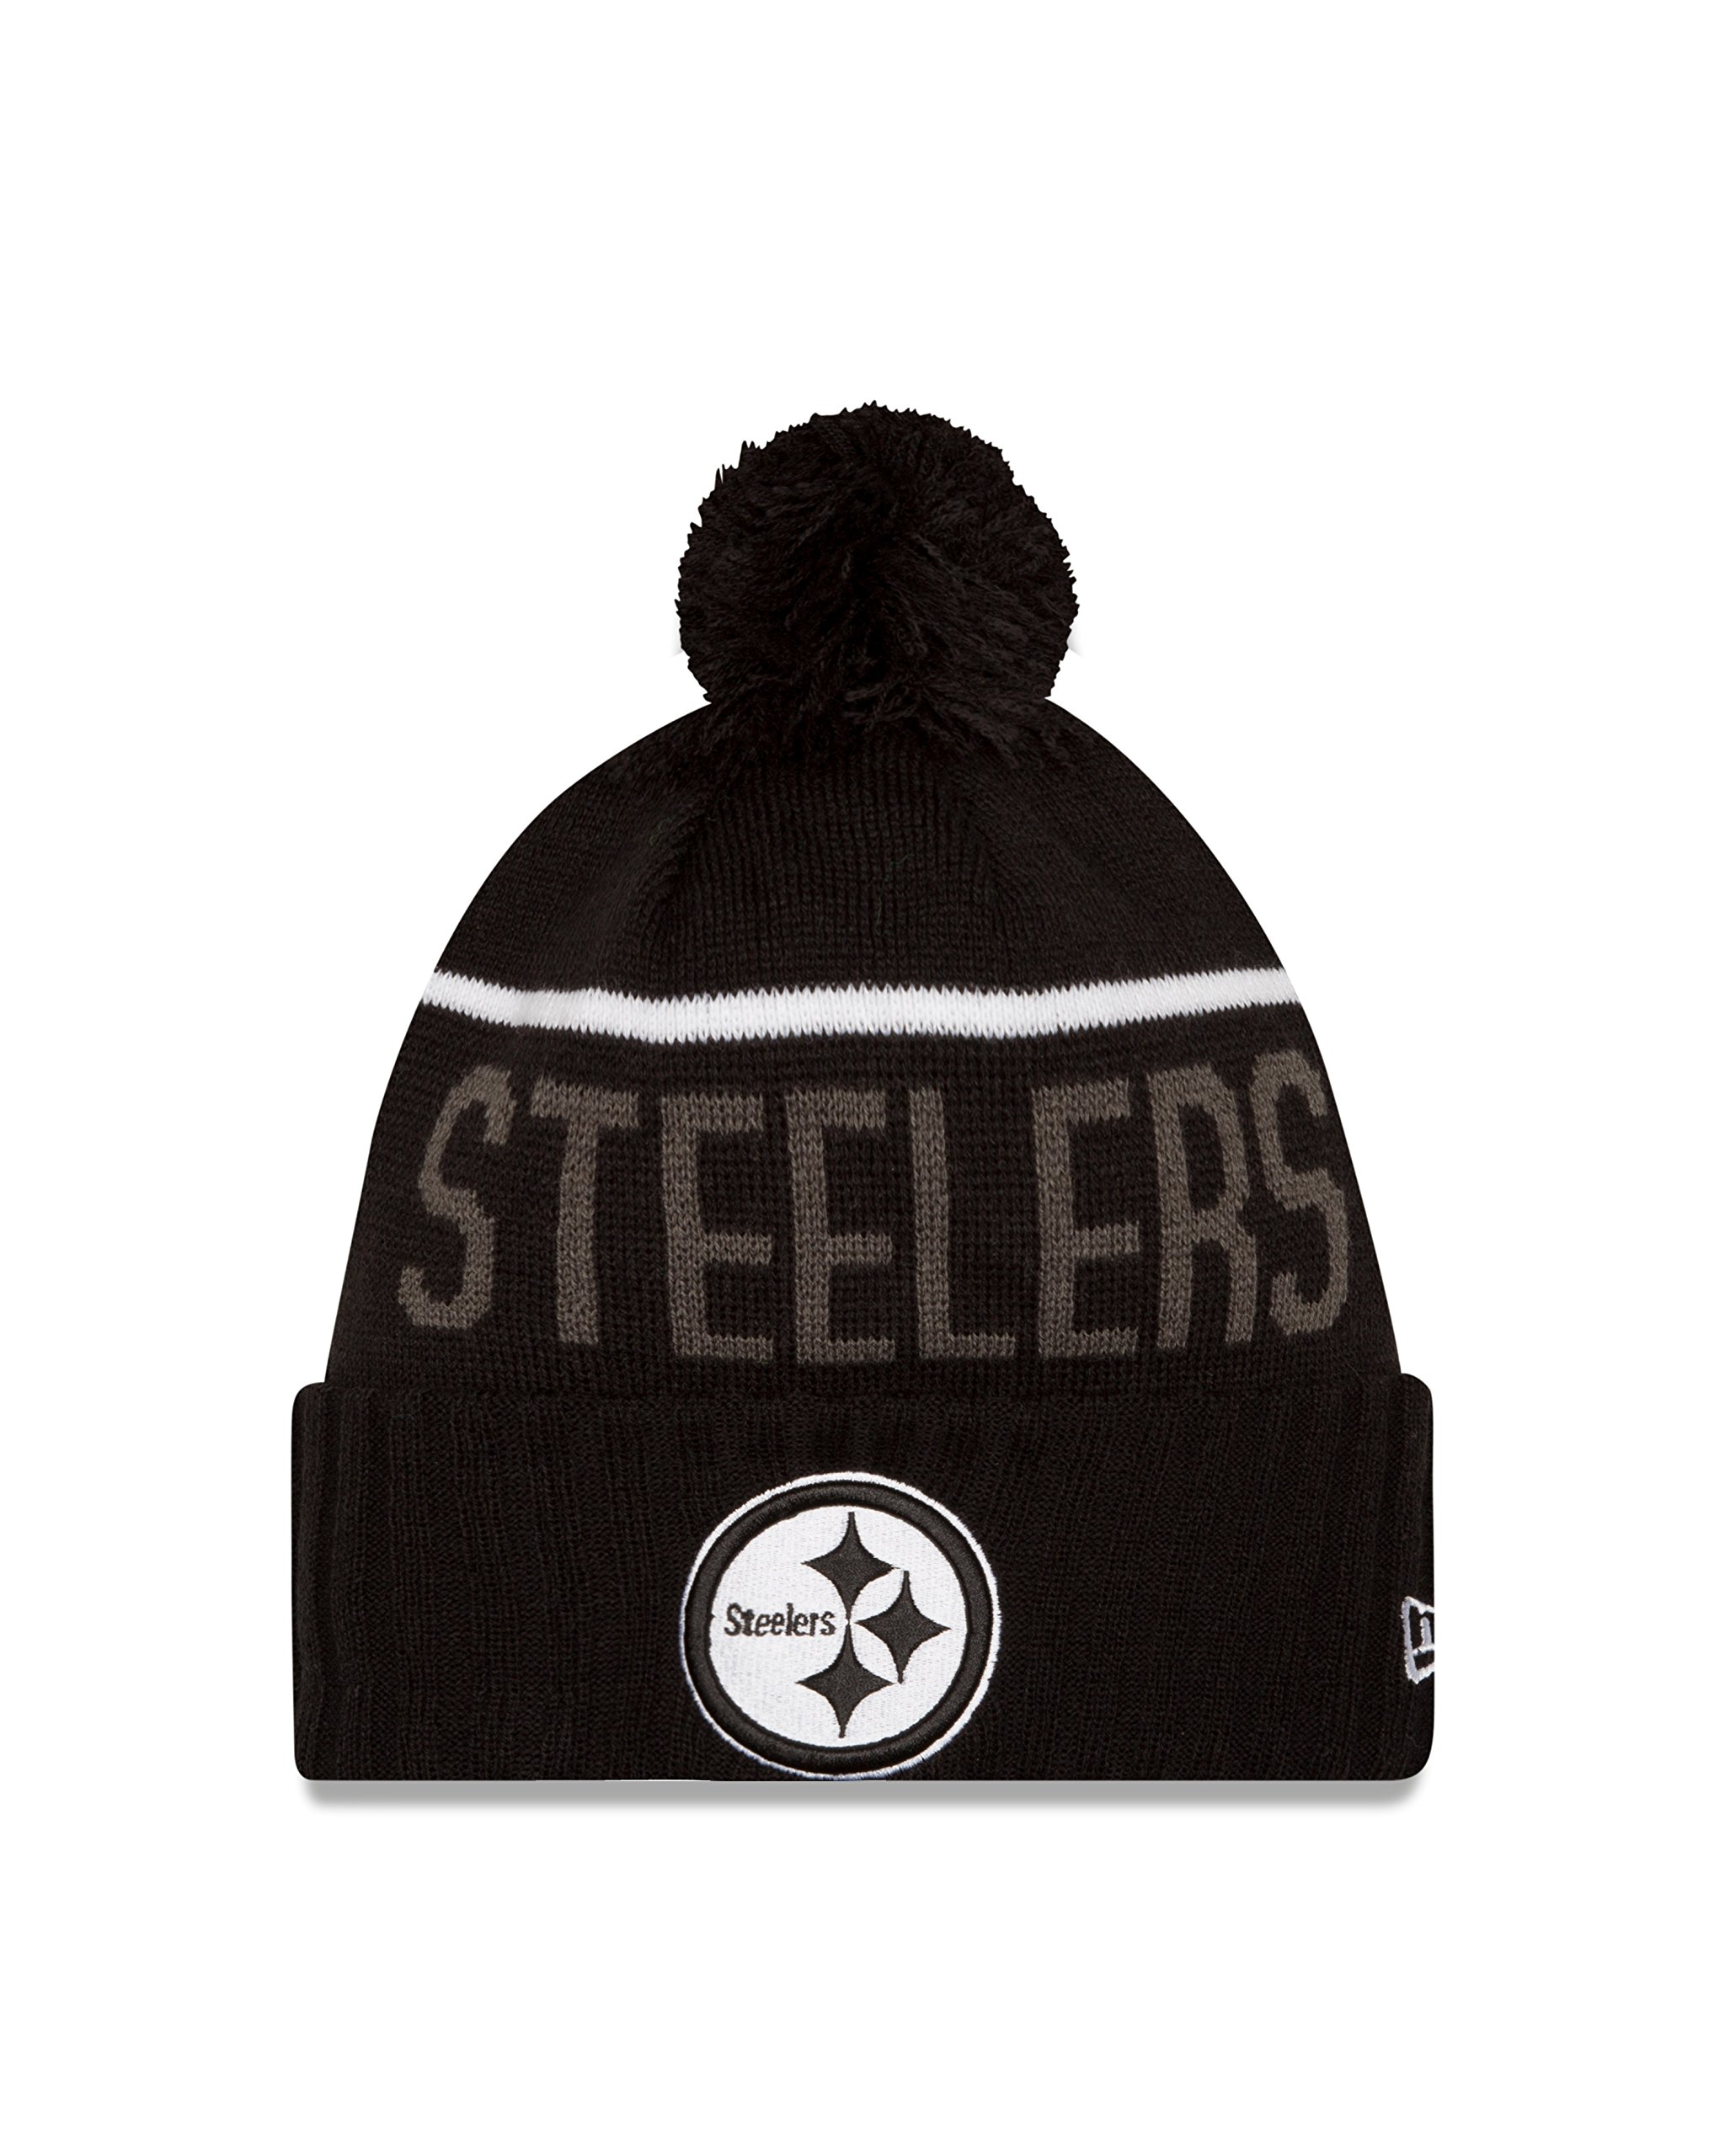 NFL Pittsburgh Steelers 2015 Sport Knit, Black, One Size